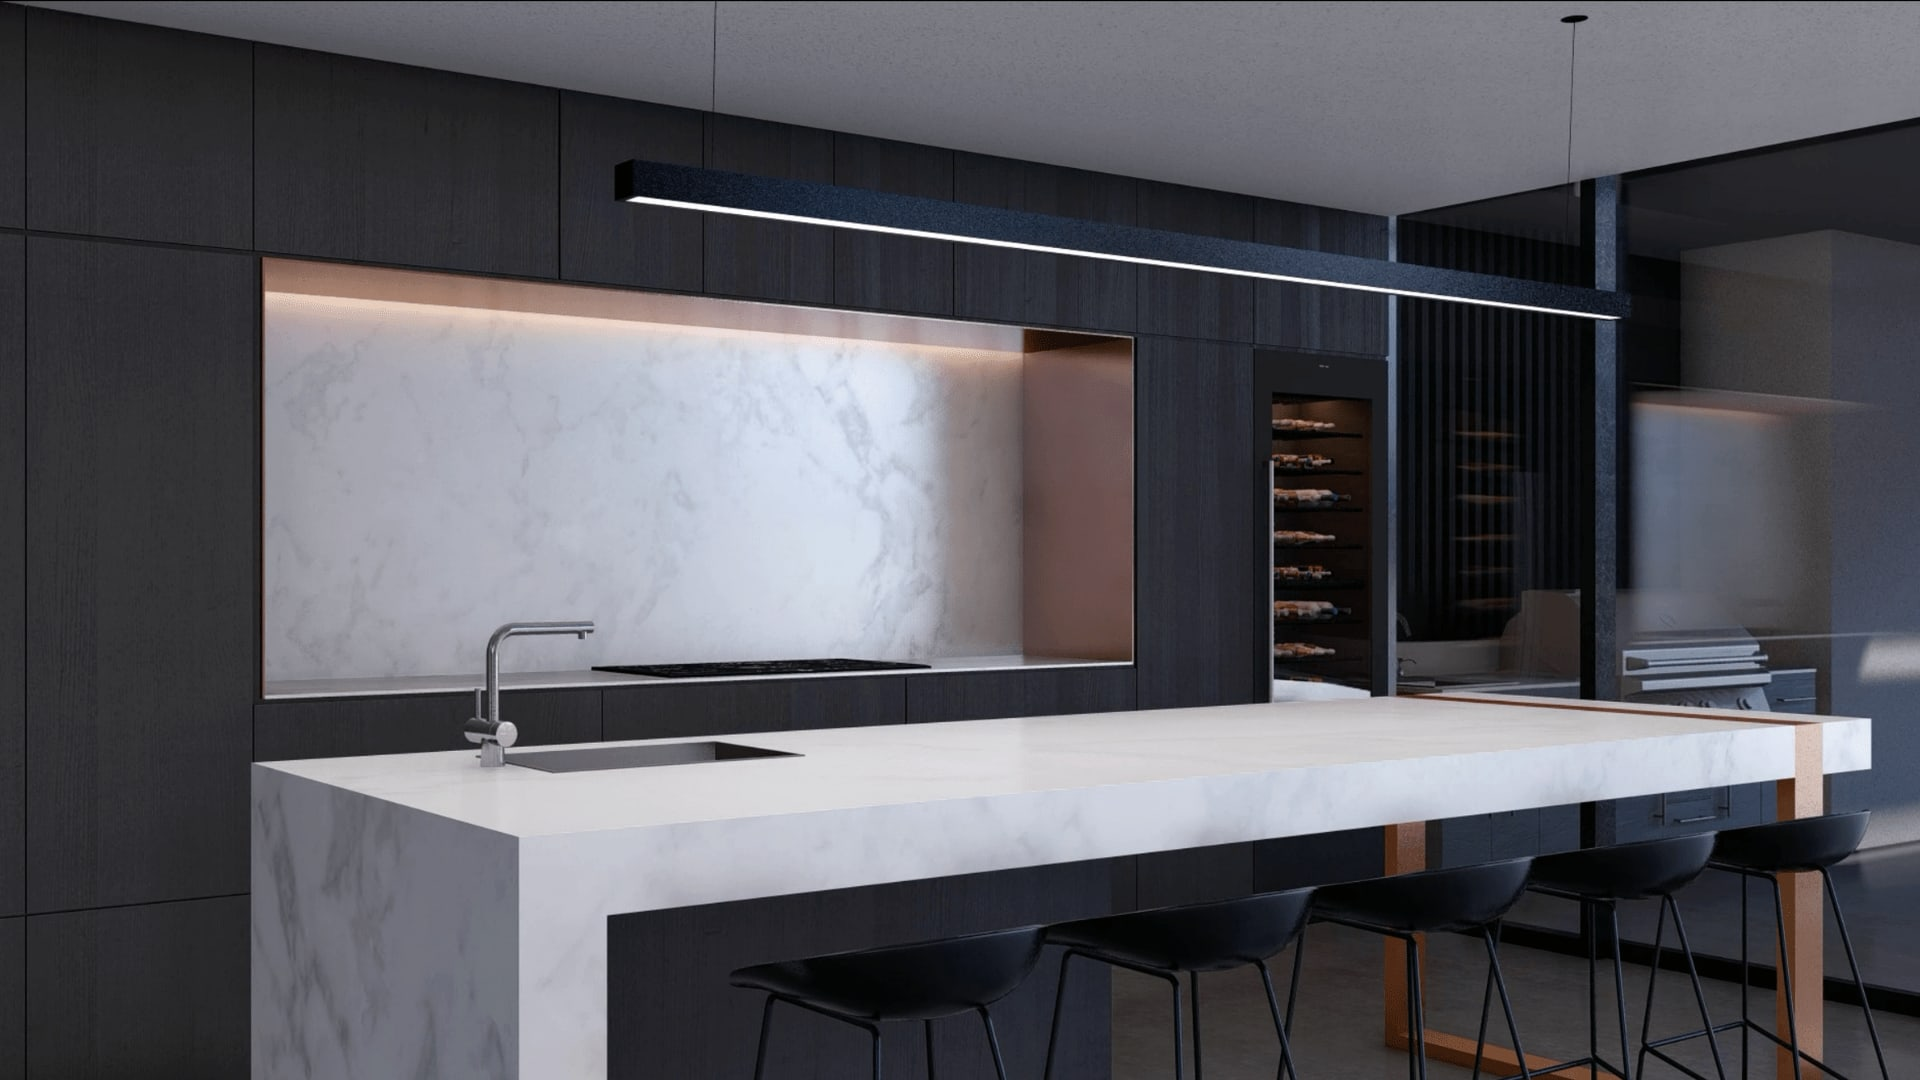 Photorealistic 3d Render of Architecturally Designed Home Kitchen from The Sanctuary Project